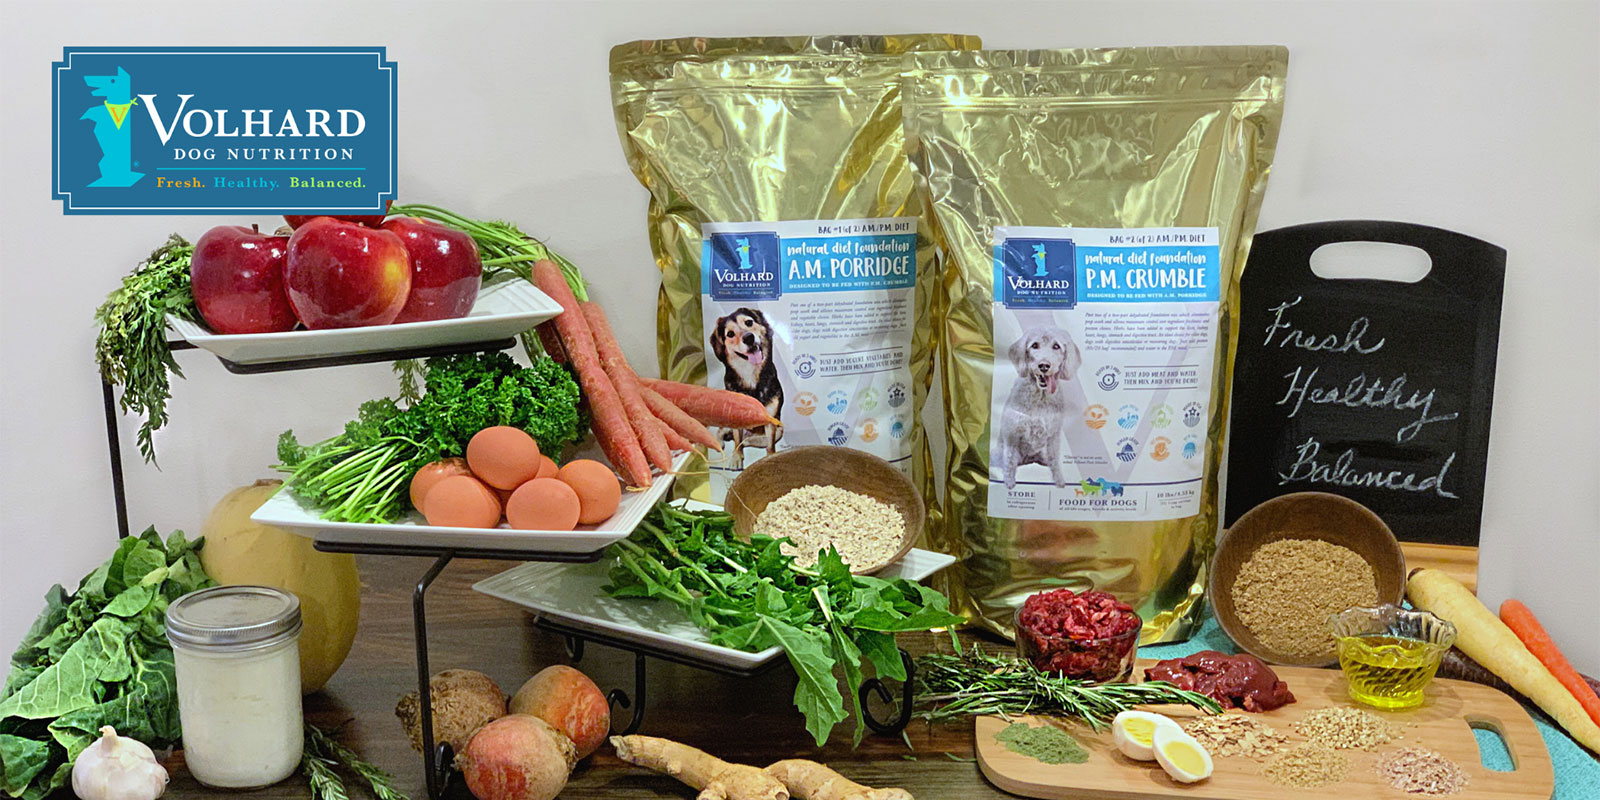 Healthy Food for Dogs | Canine Raw Diet | Volhard Dog Nutrition